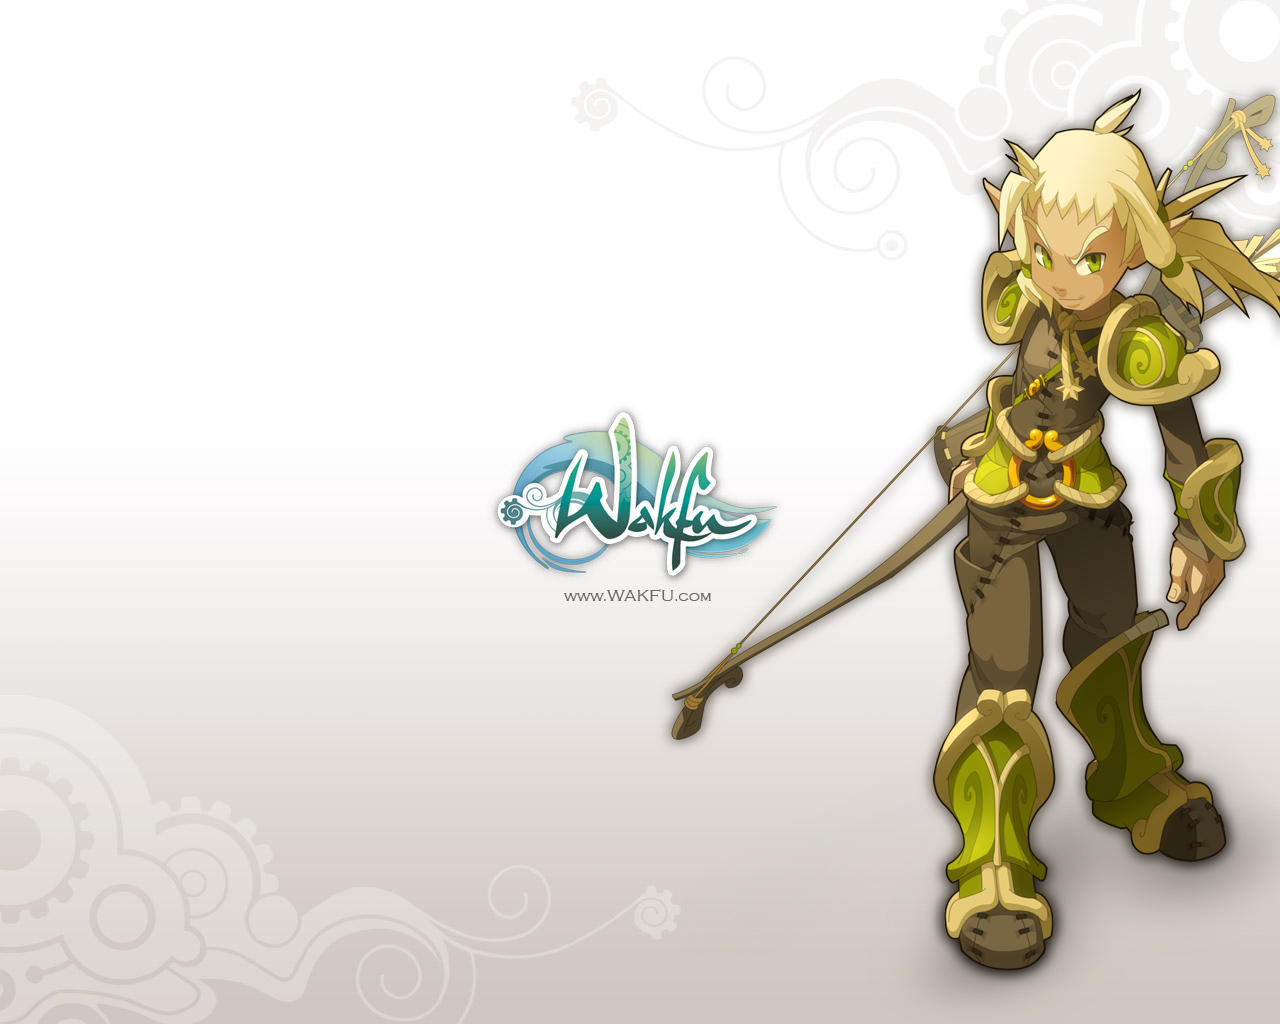 wakfu game hot girls wallpaper. Black Bedroom Furniture Sets. Home Design Ideas